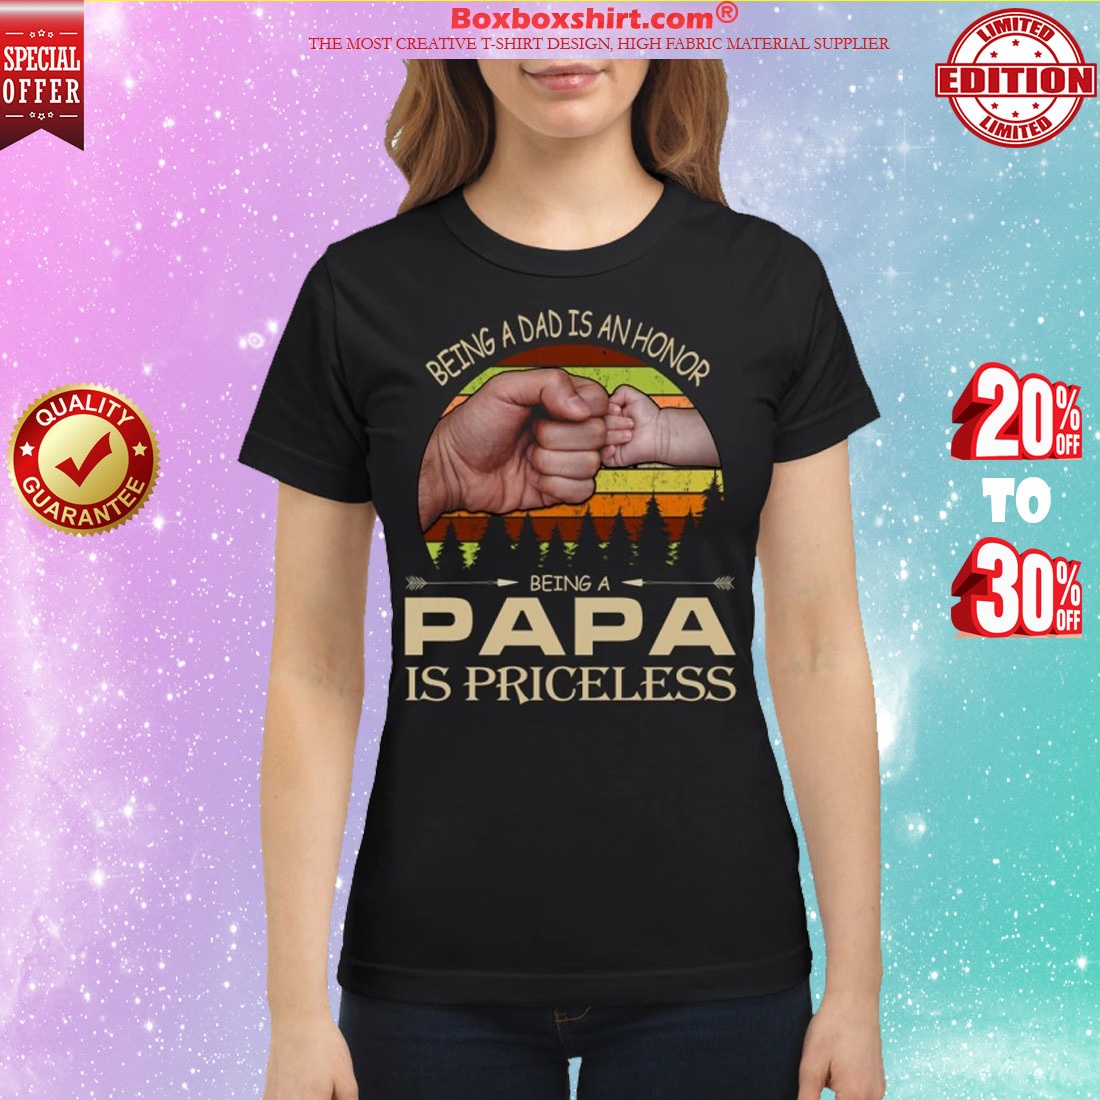 Being a dad is an honor being a papa is priceless classic shirt